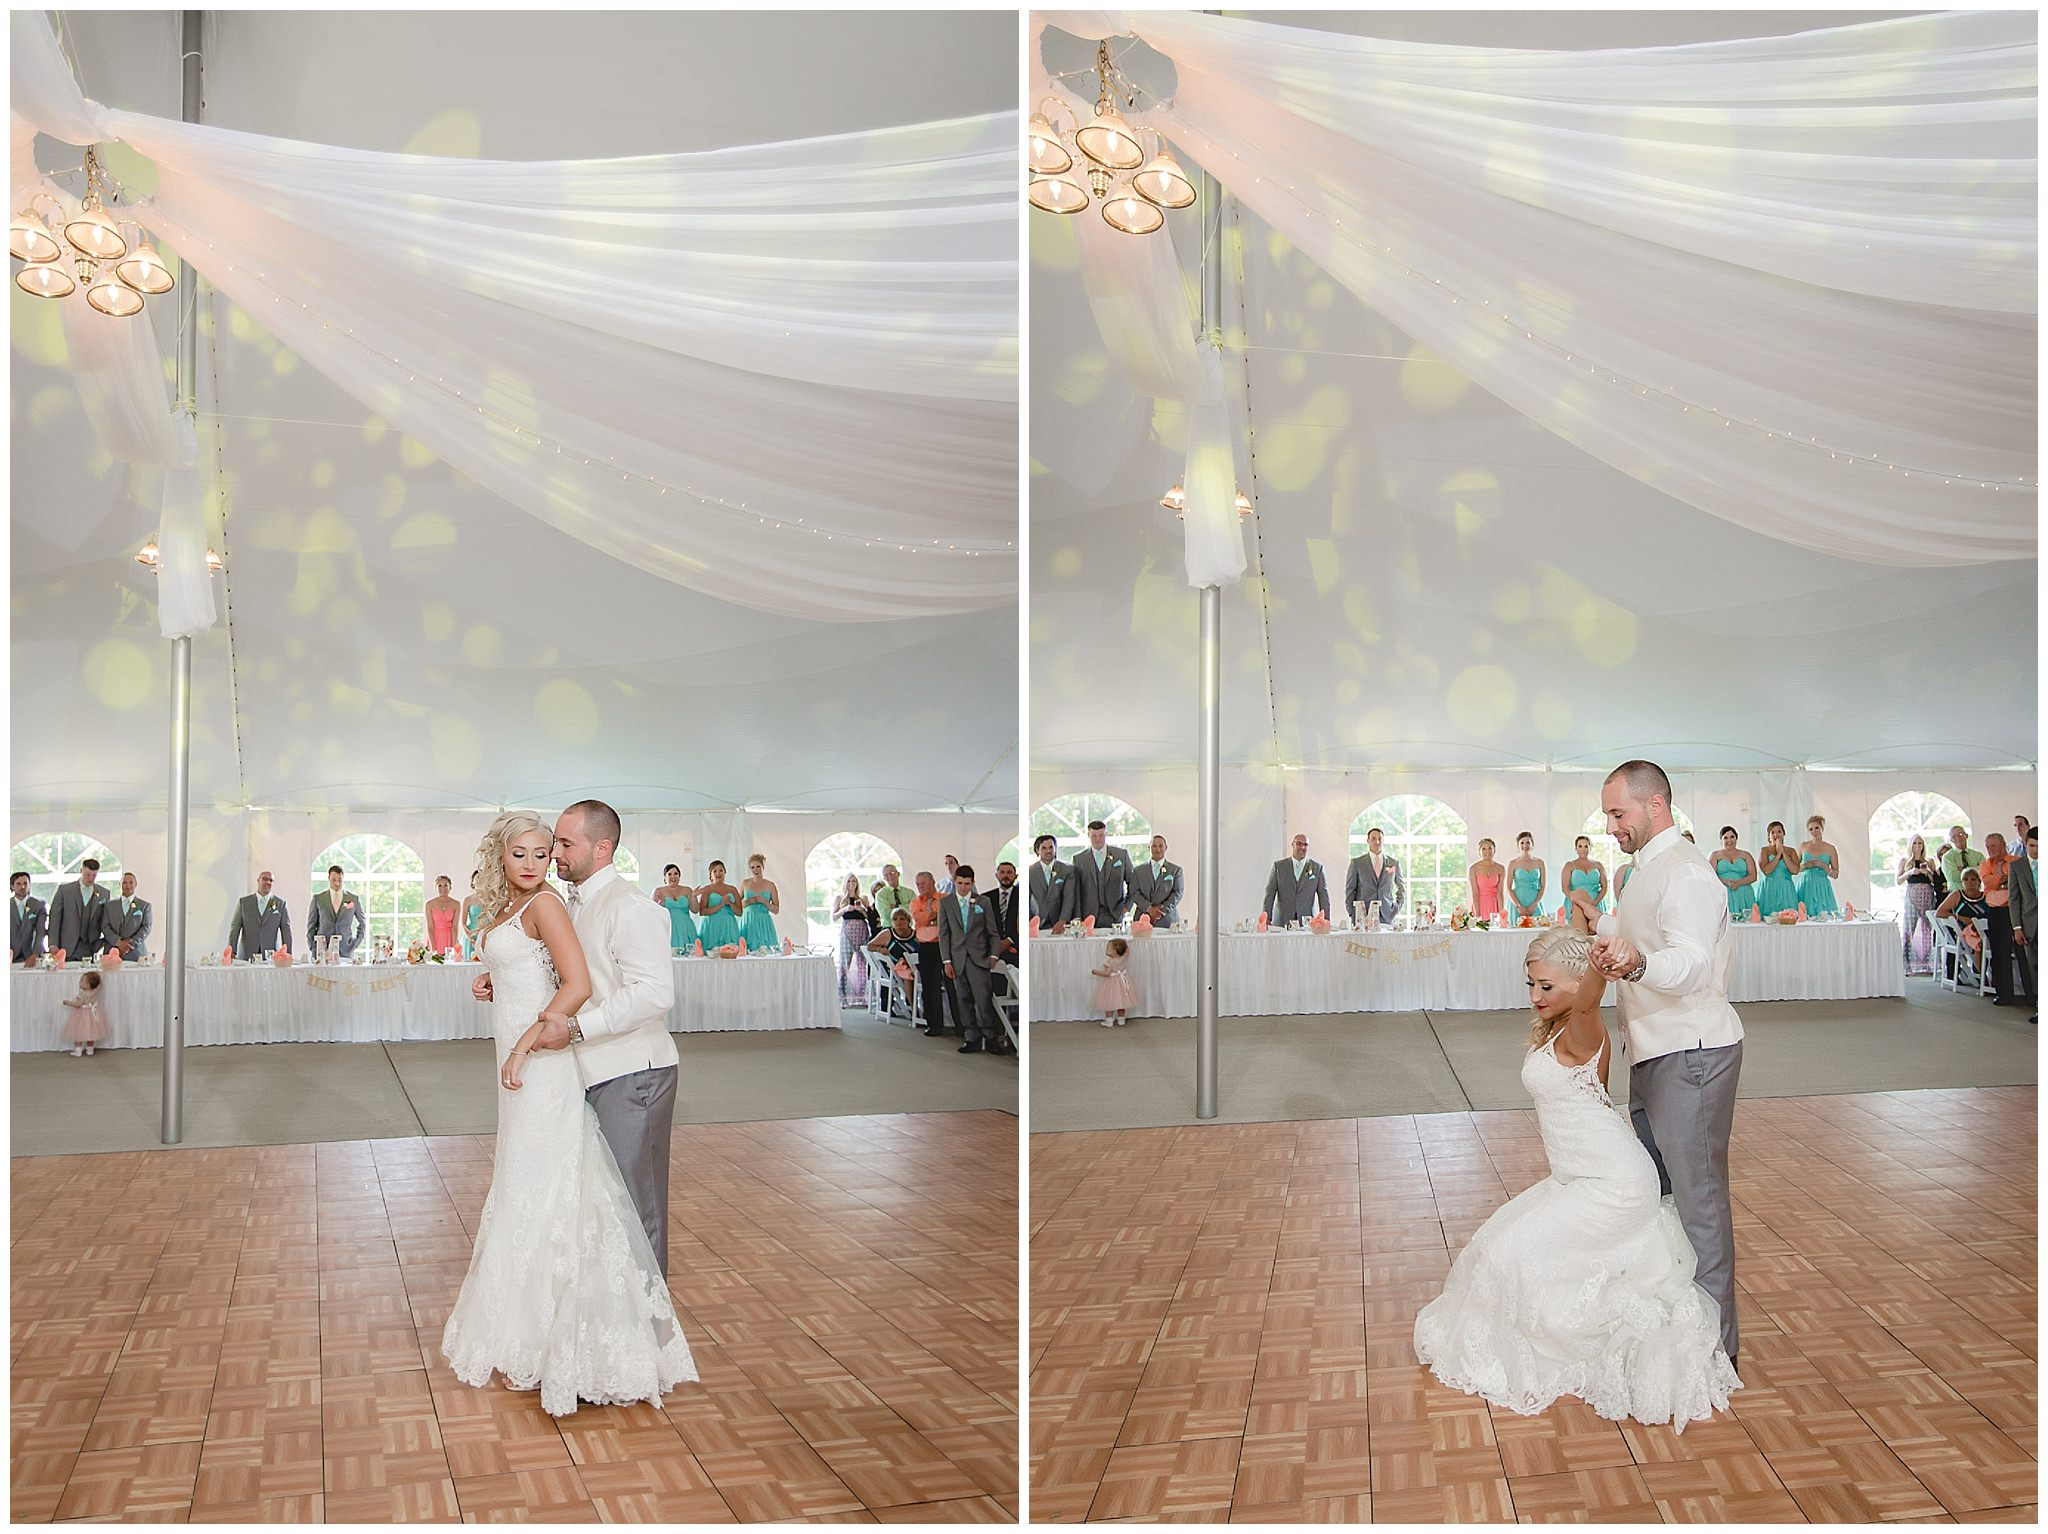 Bride and groom perform a salsa dance at their reception